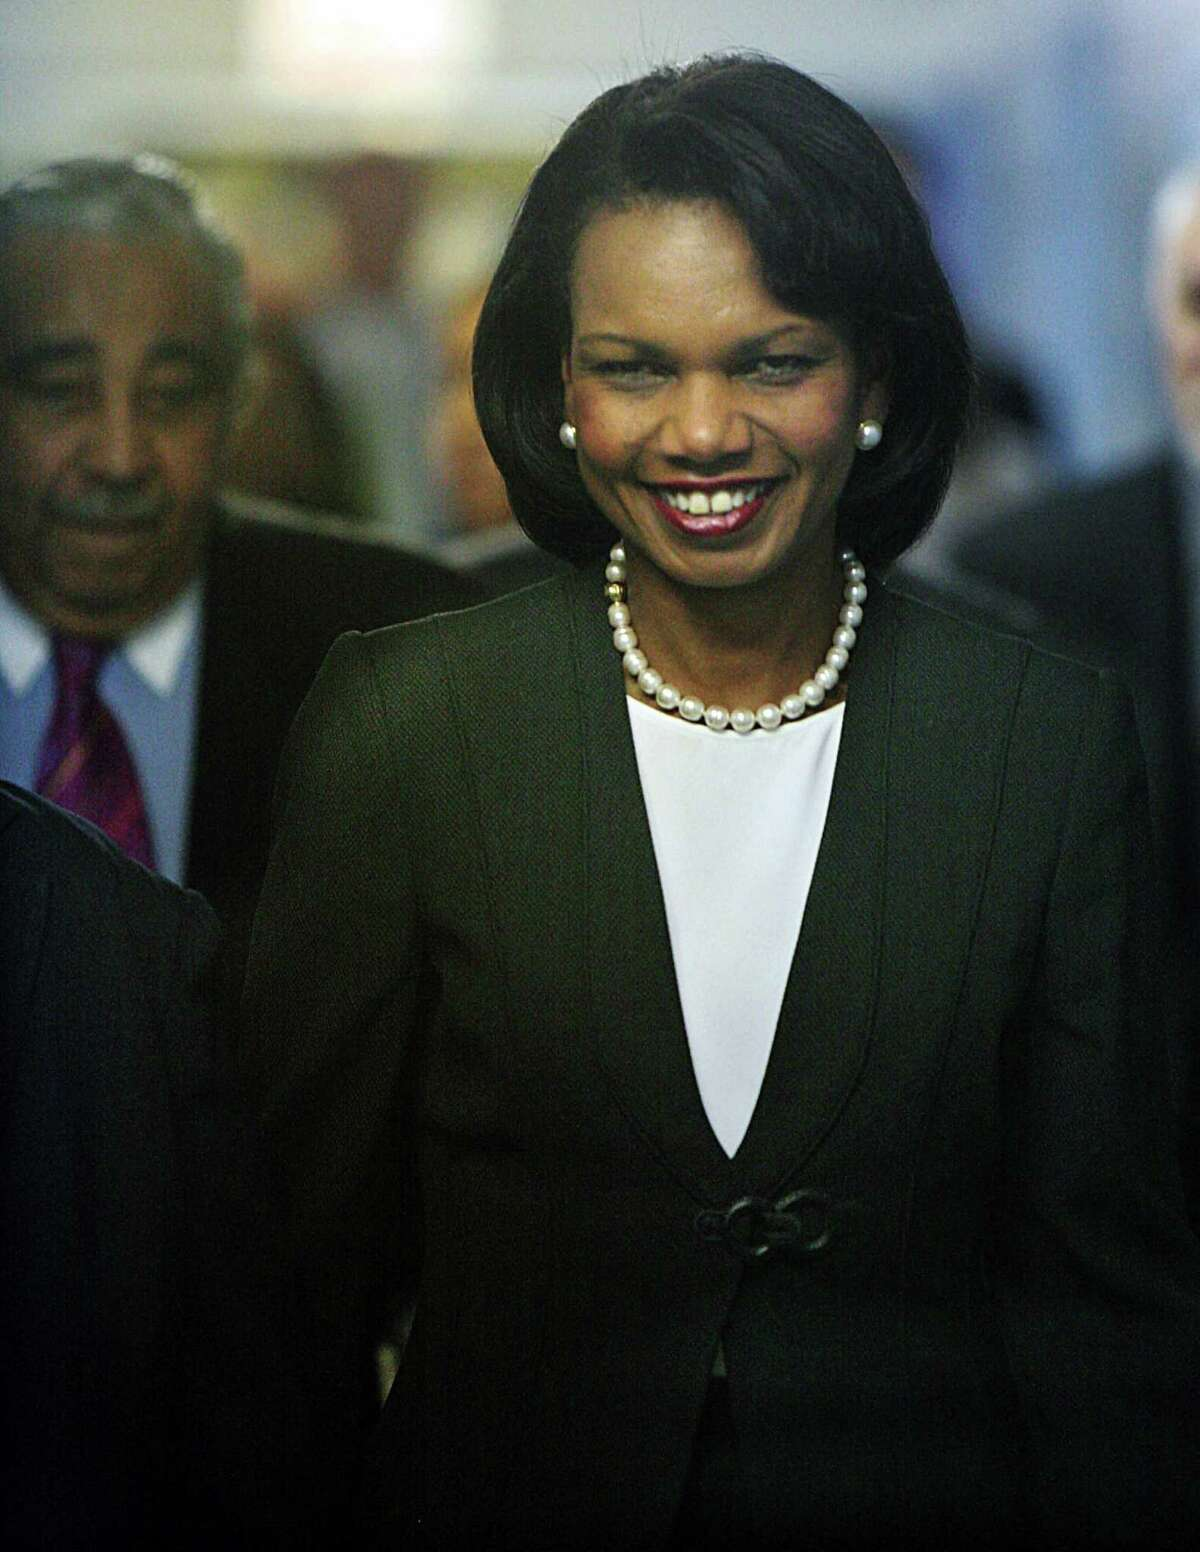 Former U.S. Secretary of State Condoleezza Rice, pictured here in 2007, is well-respected, and a reader says she would make an excellent vice presidential pick for Joe Biden.